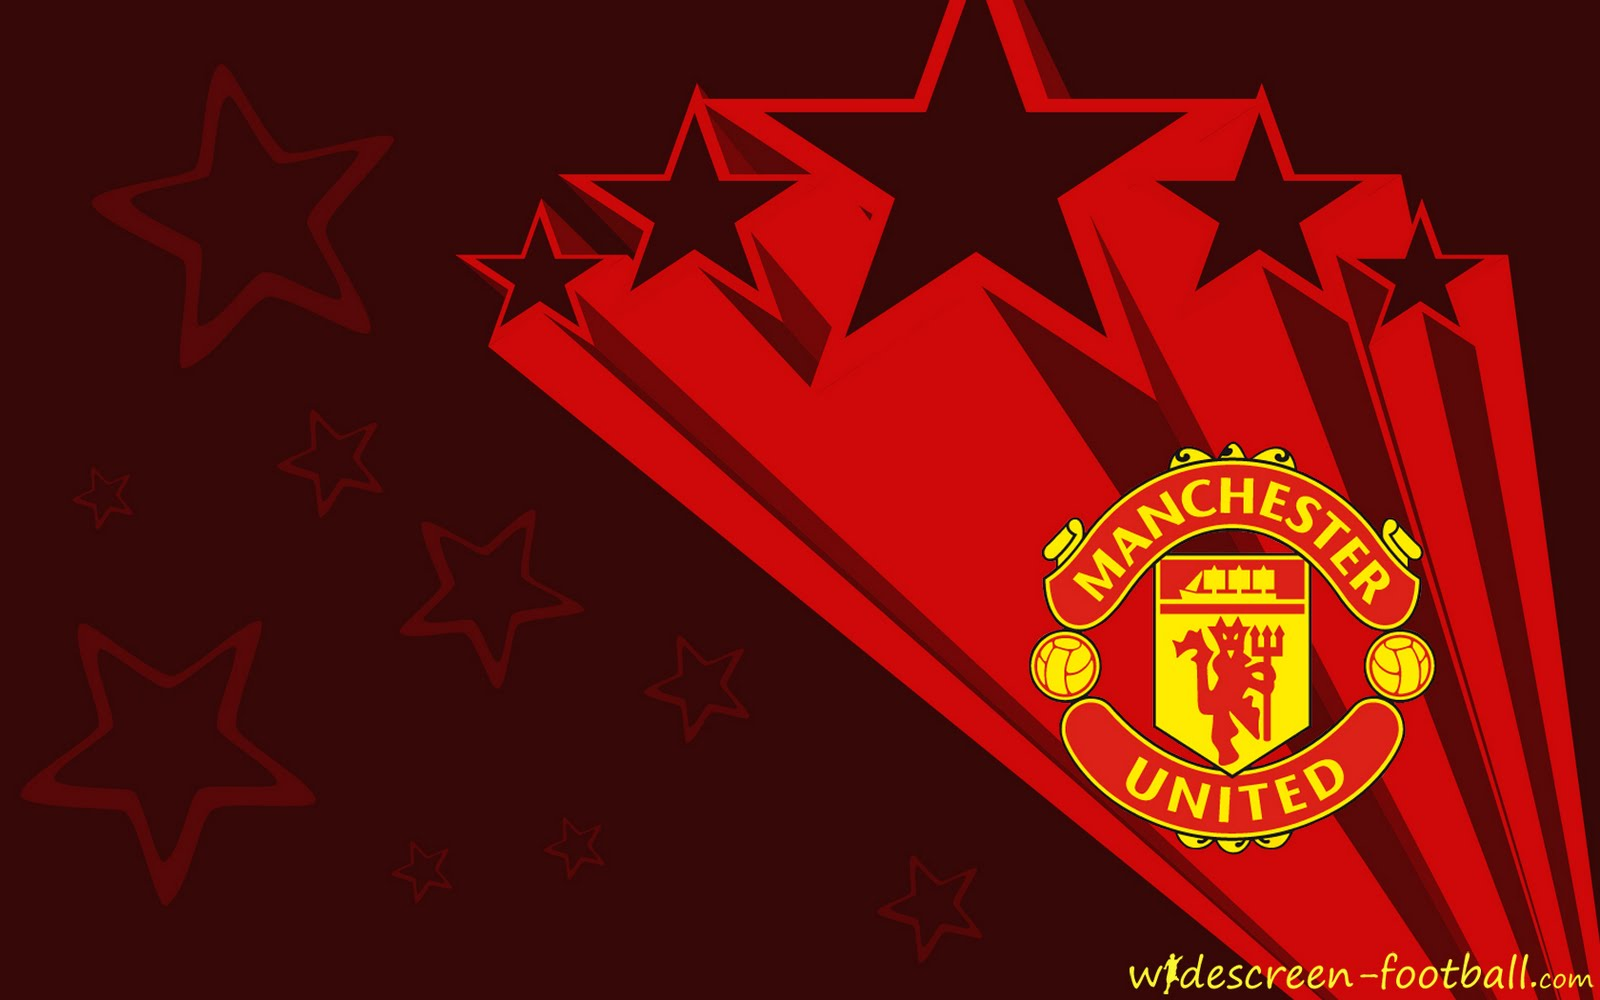 Manchester united wallpapers hd hd wallpapers for Design manchester